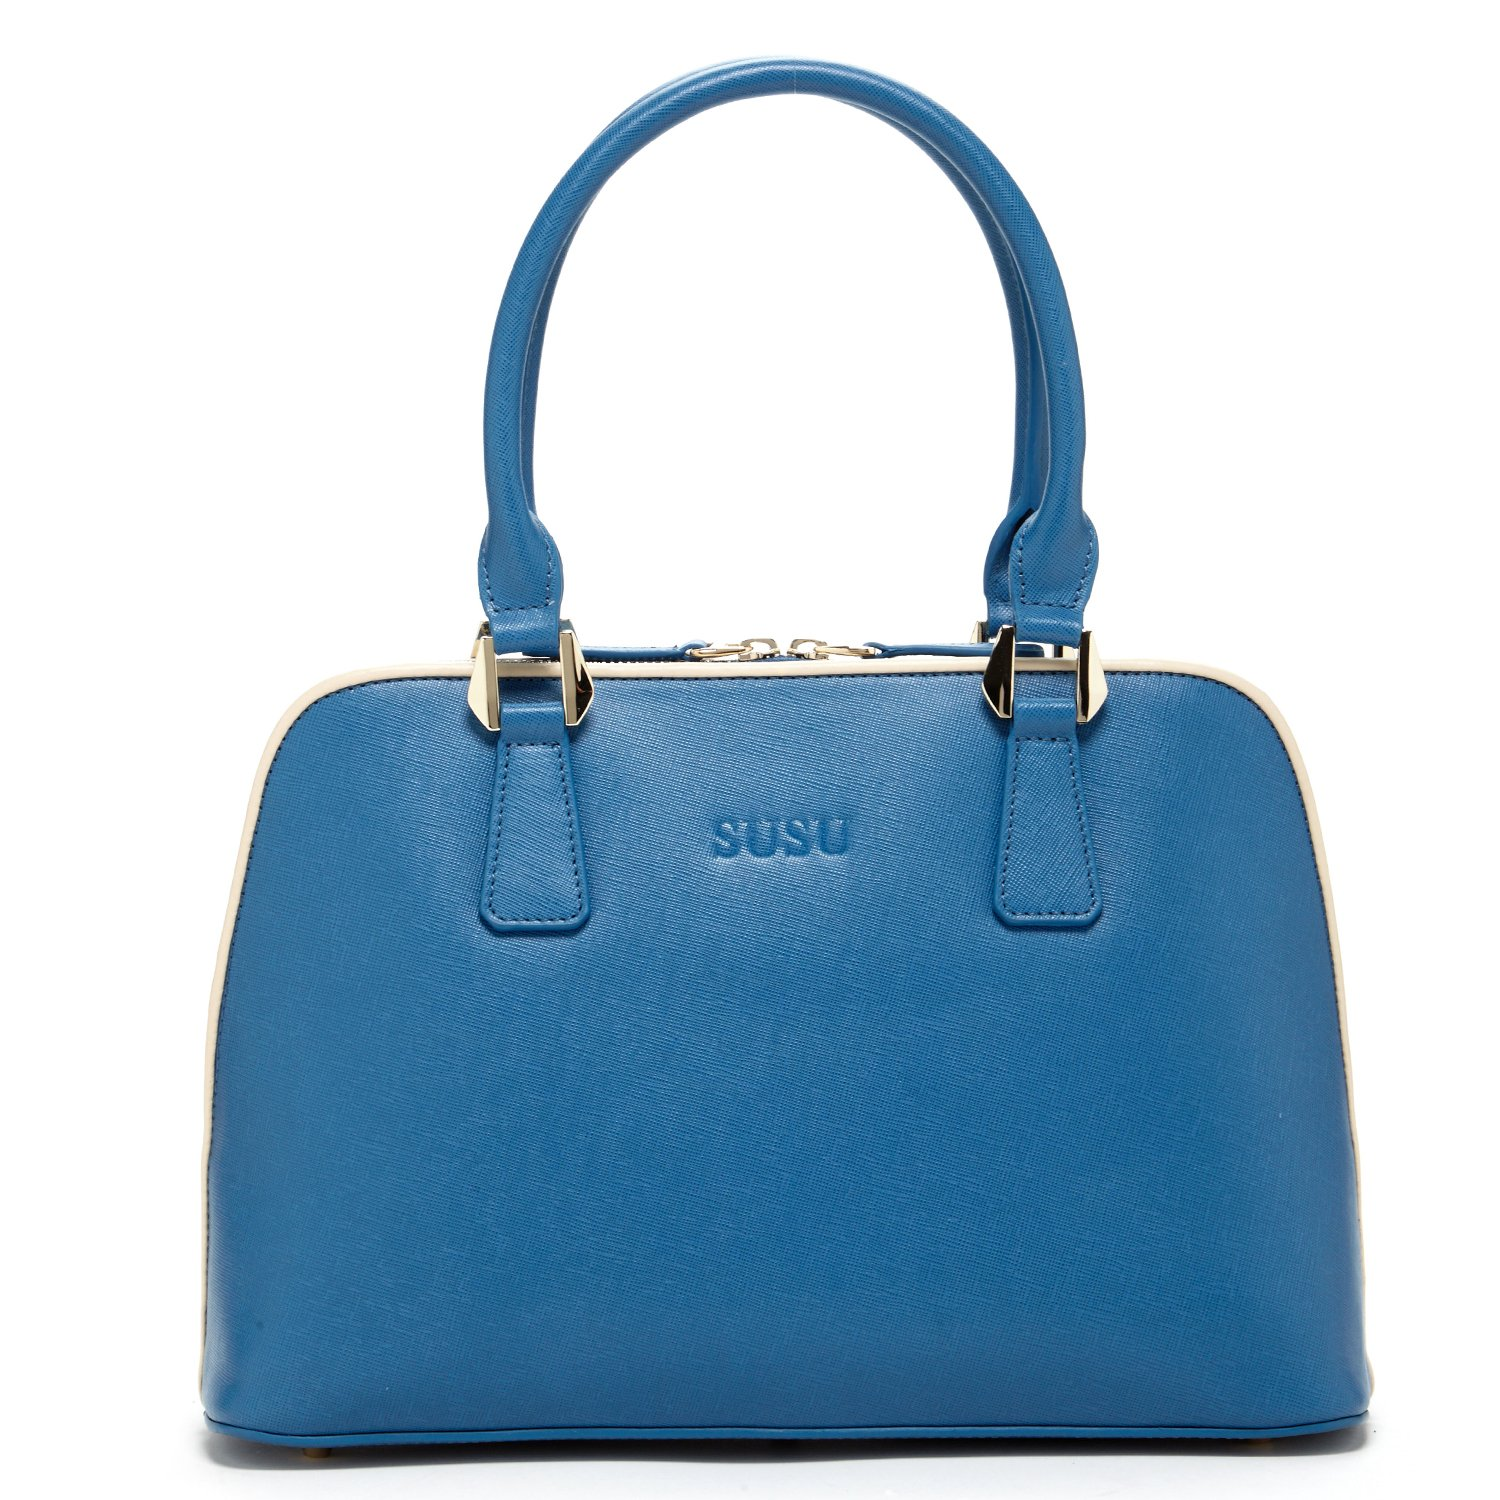 SUSU Blue Leather Satchel Bags For Women Top Handle Dome Shape Designer Handbags with Long Shoulder Strap Classic Elegant Purse For Work Zipper Closure Medium Big Size Stylish Bag For Travel For Gift by SUSU